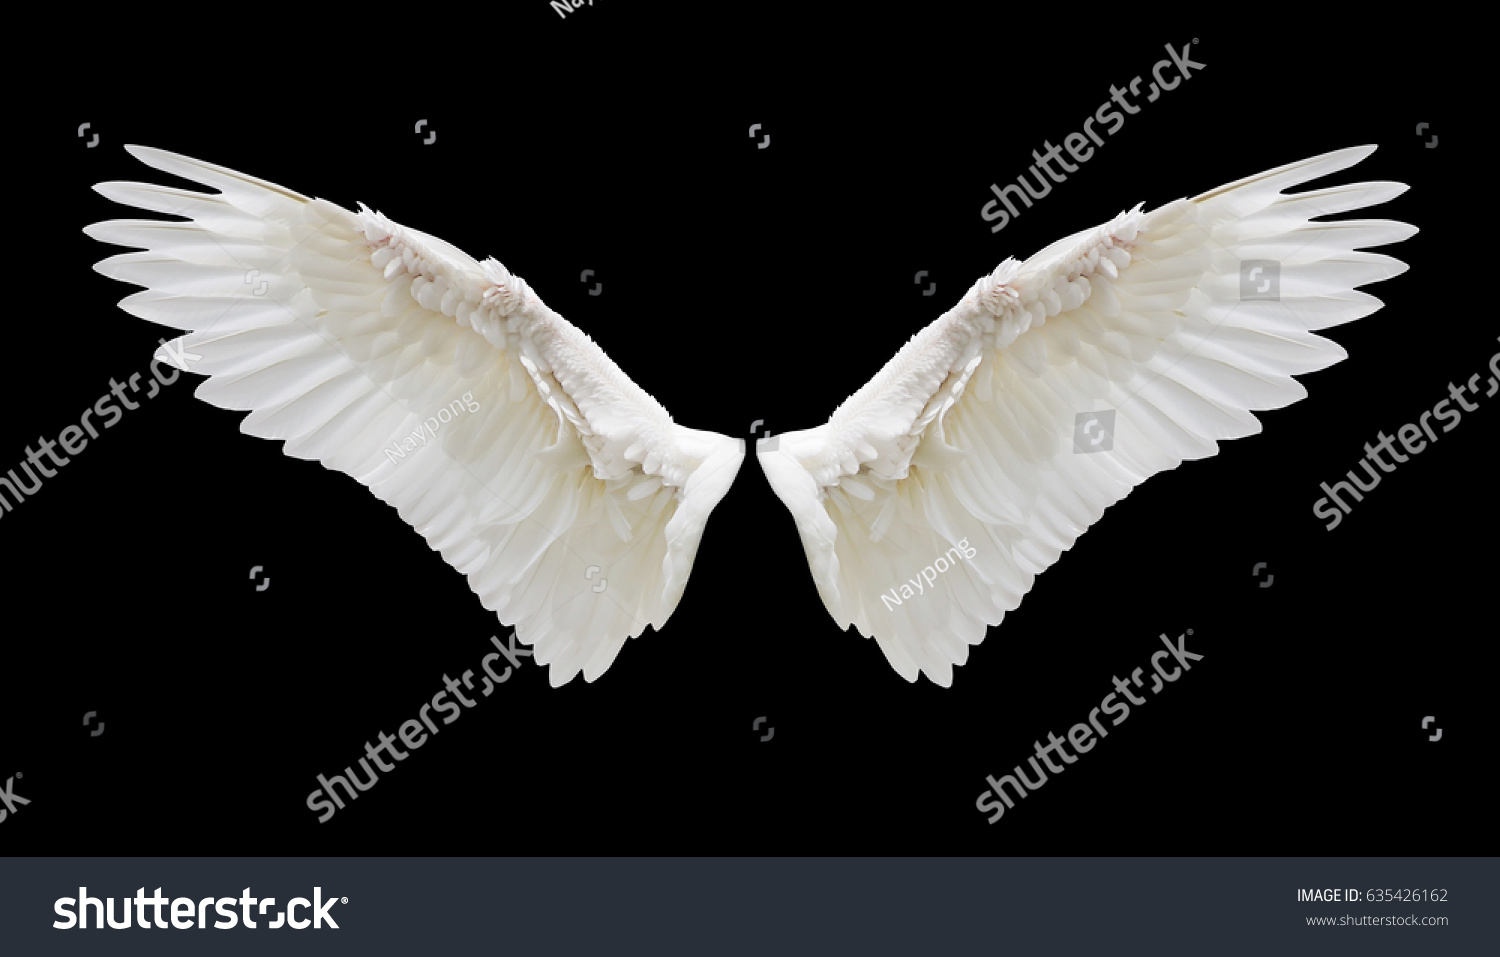 angel wings black background - photo #28